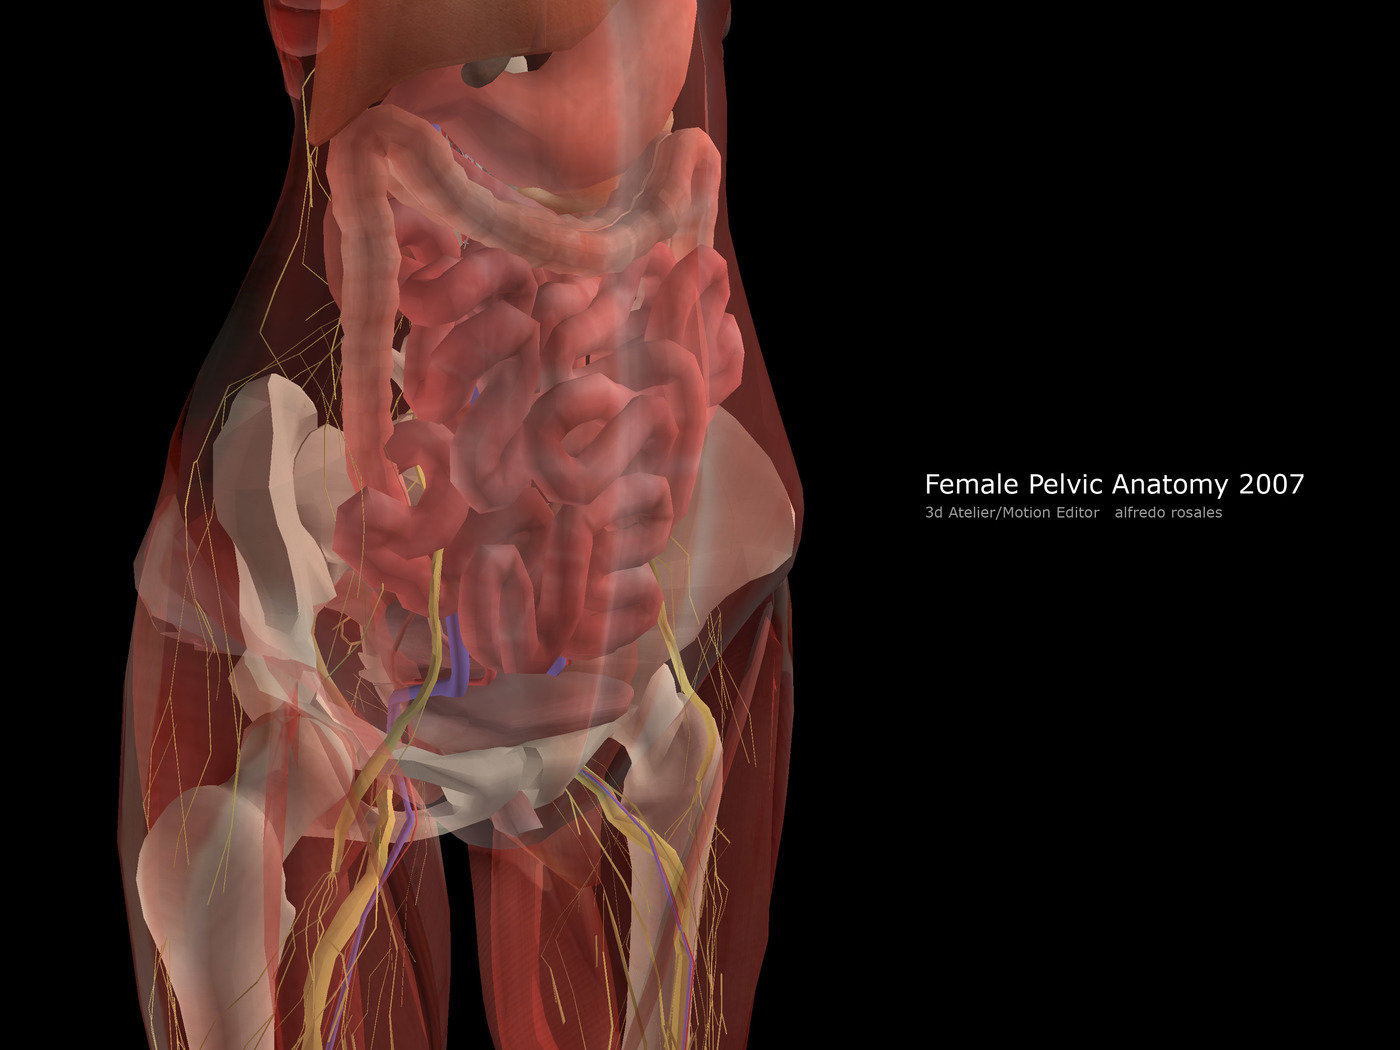 Pelvic anatomy female